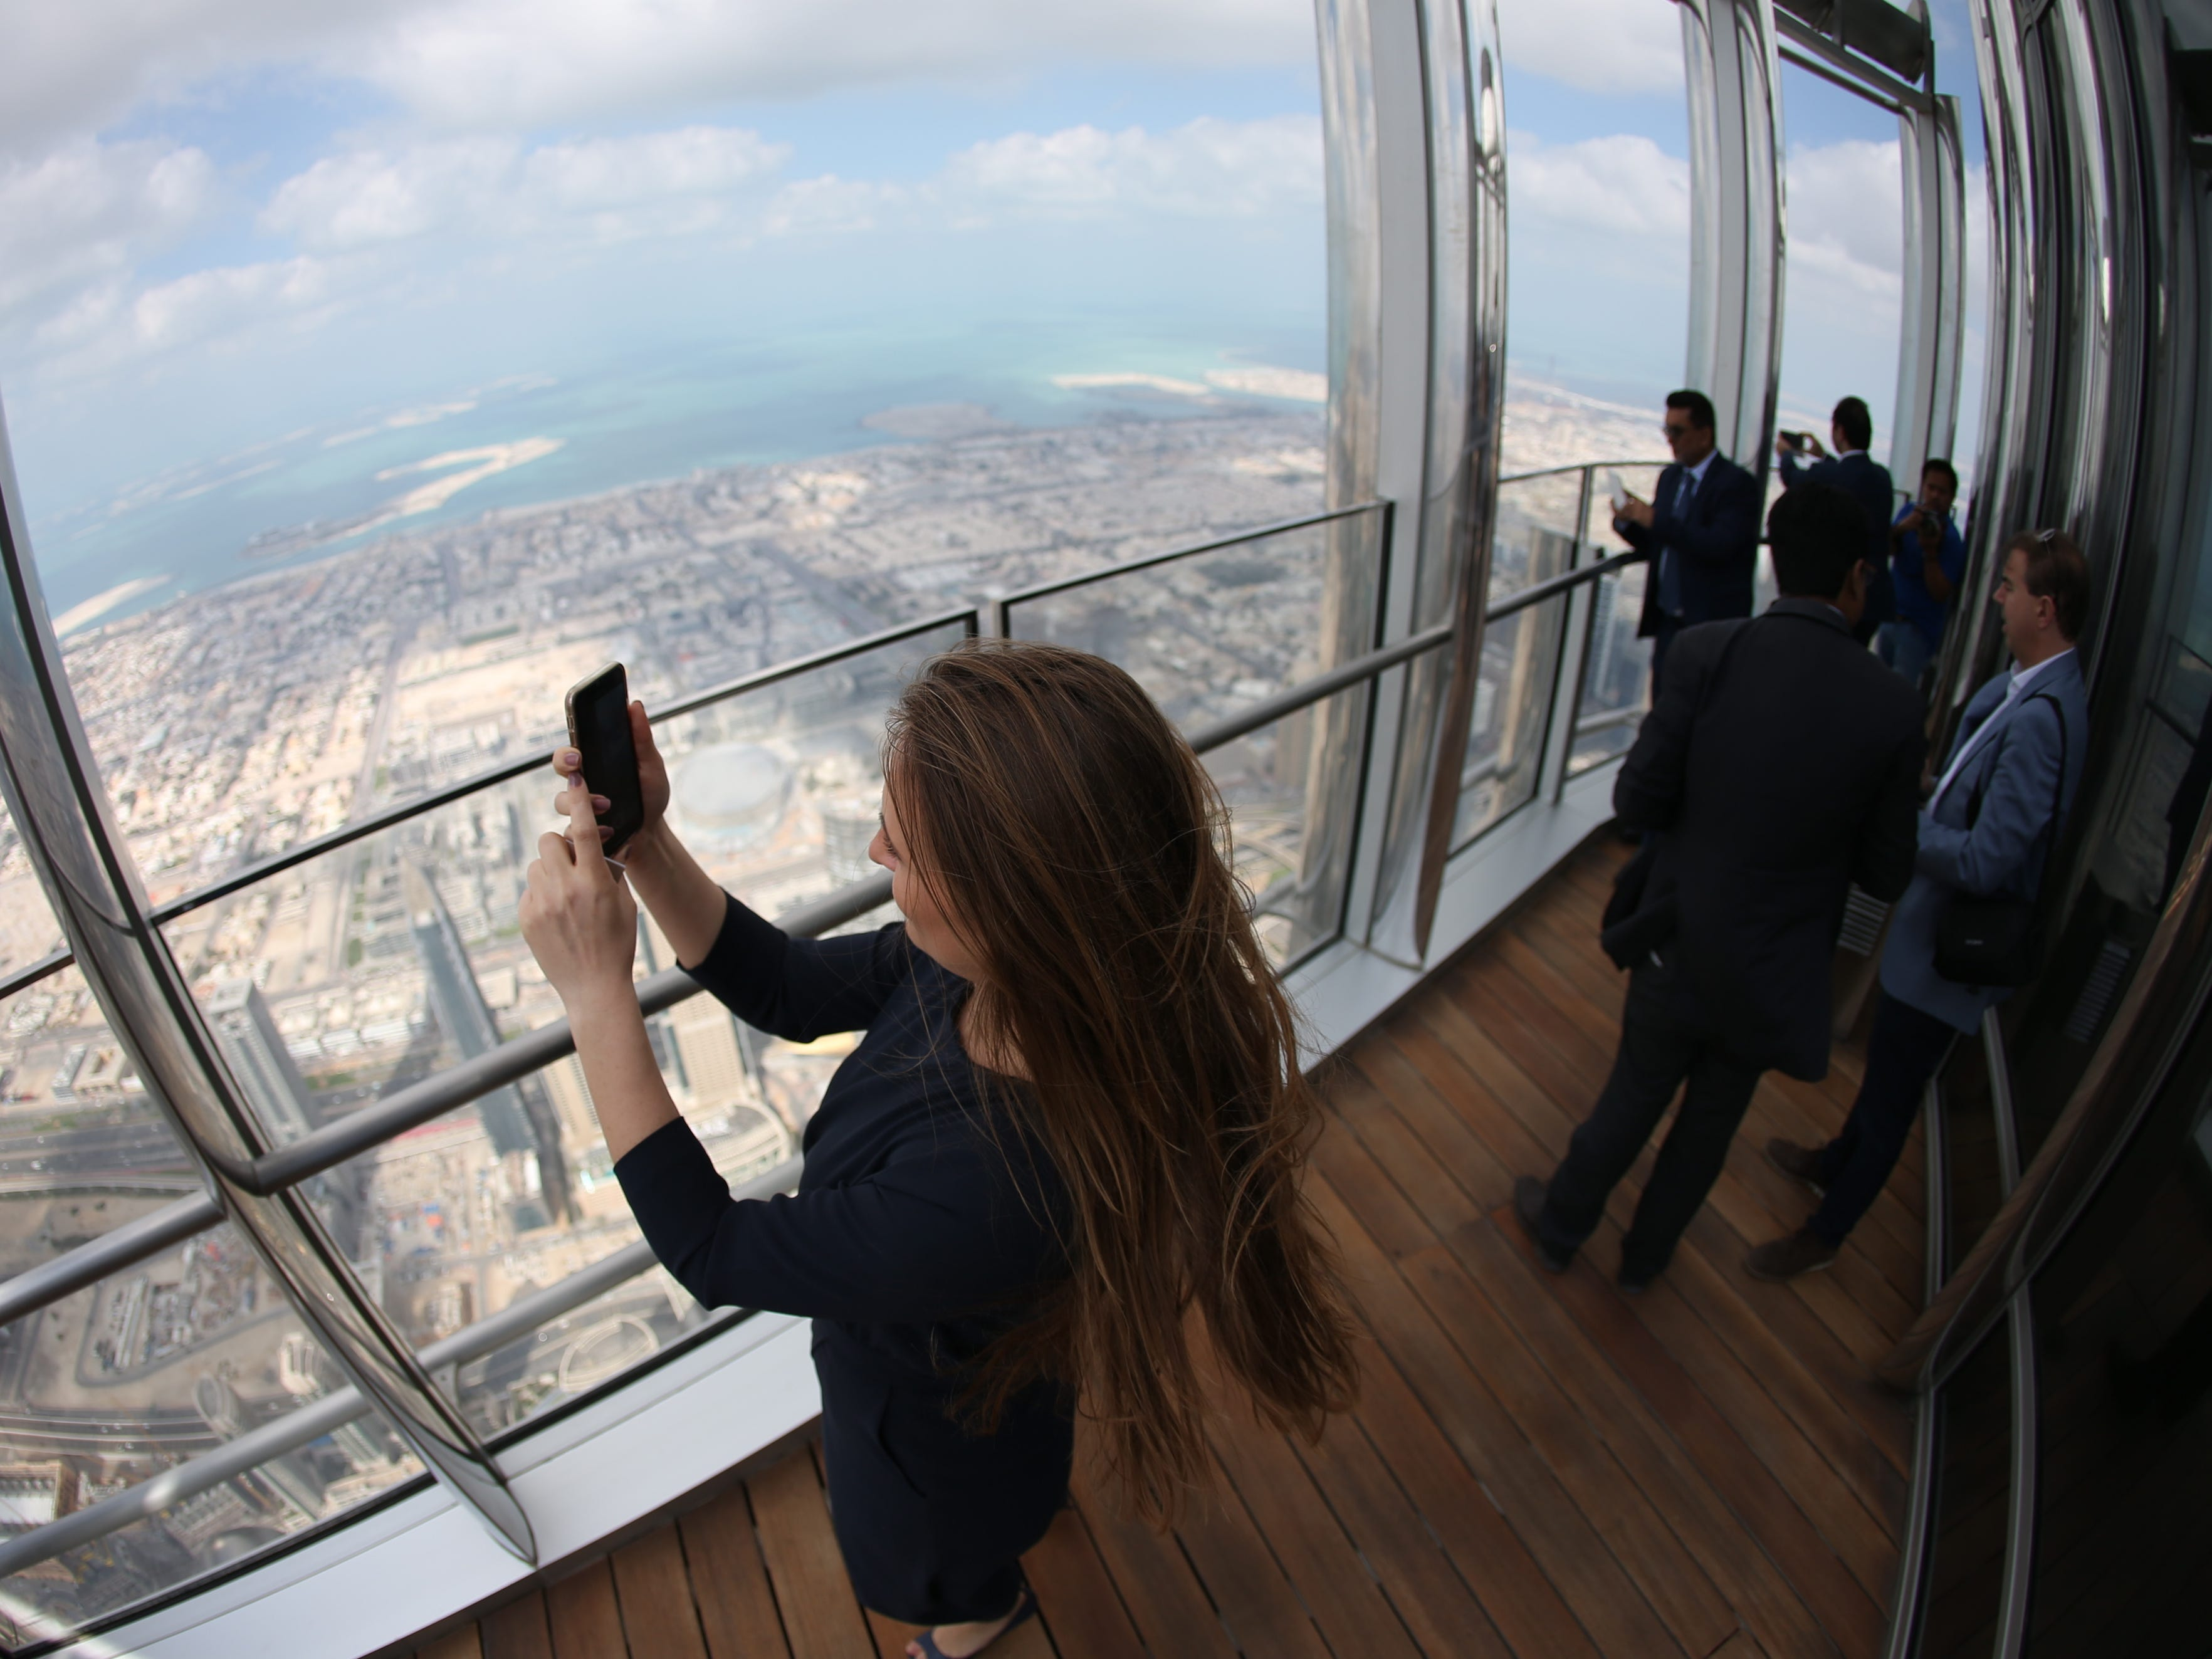 epa07366409 A picture taken with a fish eye lens shows people inspecting the new highest lounge in the world at Burj Khalifa in Dubai, United Arab Emirates, 13 February 2019. Ahmad Al Falasi, Executive Director Emaar Properties announced during media briefing the opening of highest lounge in the world at Burj Khalifa which is located at 152, 153 and 154 floor which have distinctive settings each assuring never before seen views of the city.  EPA-EFE/ALI HAIDER ORG XMIT: XAH001